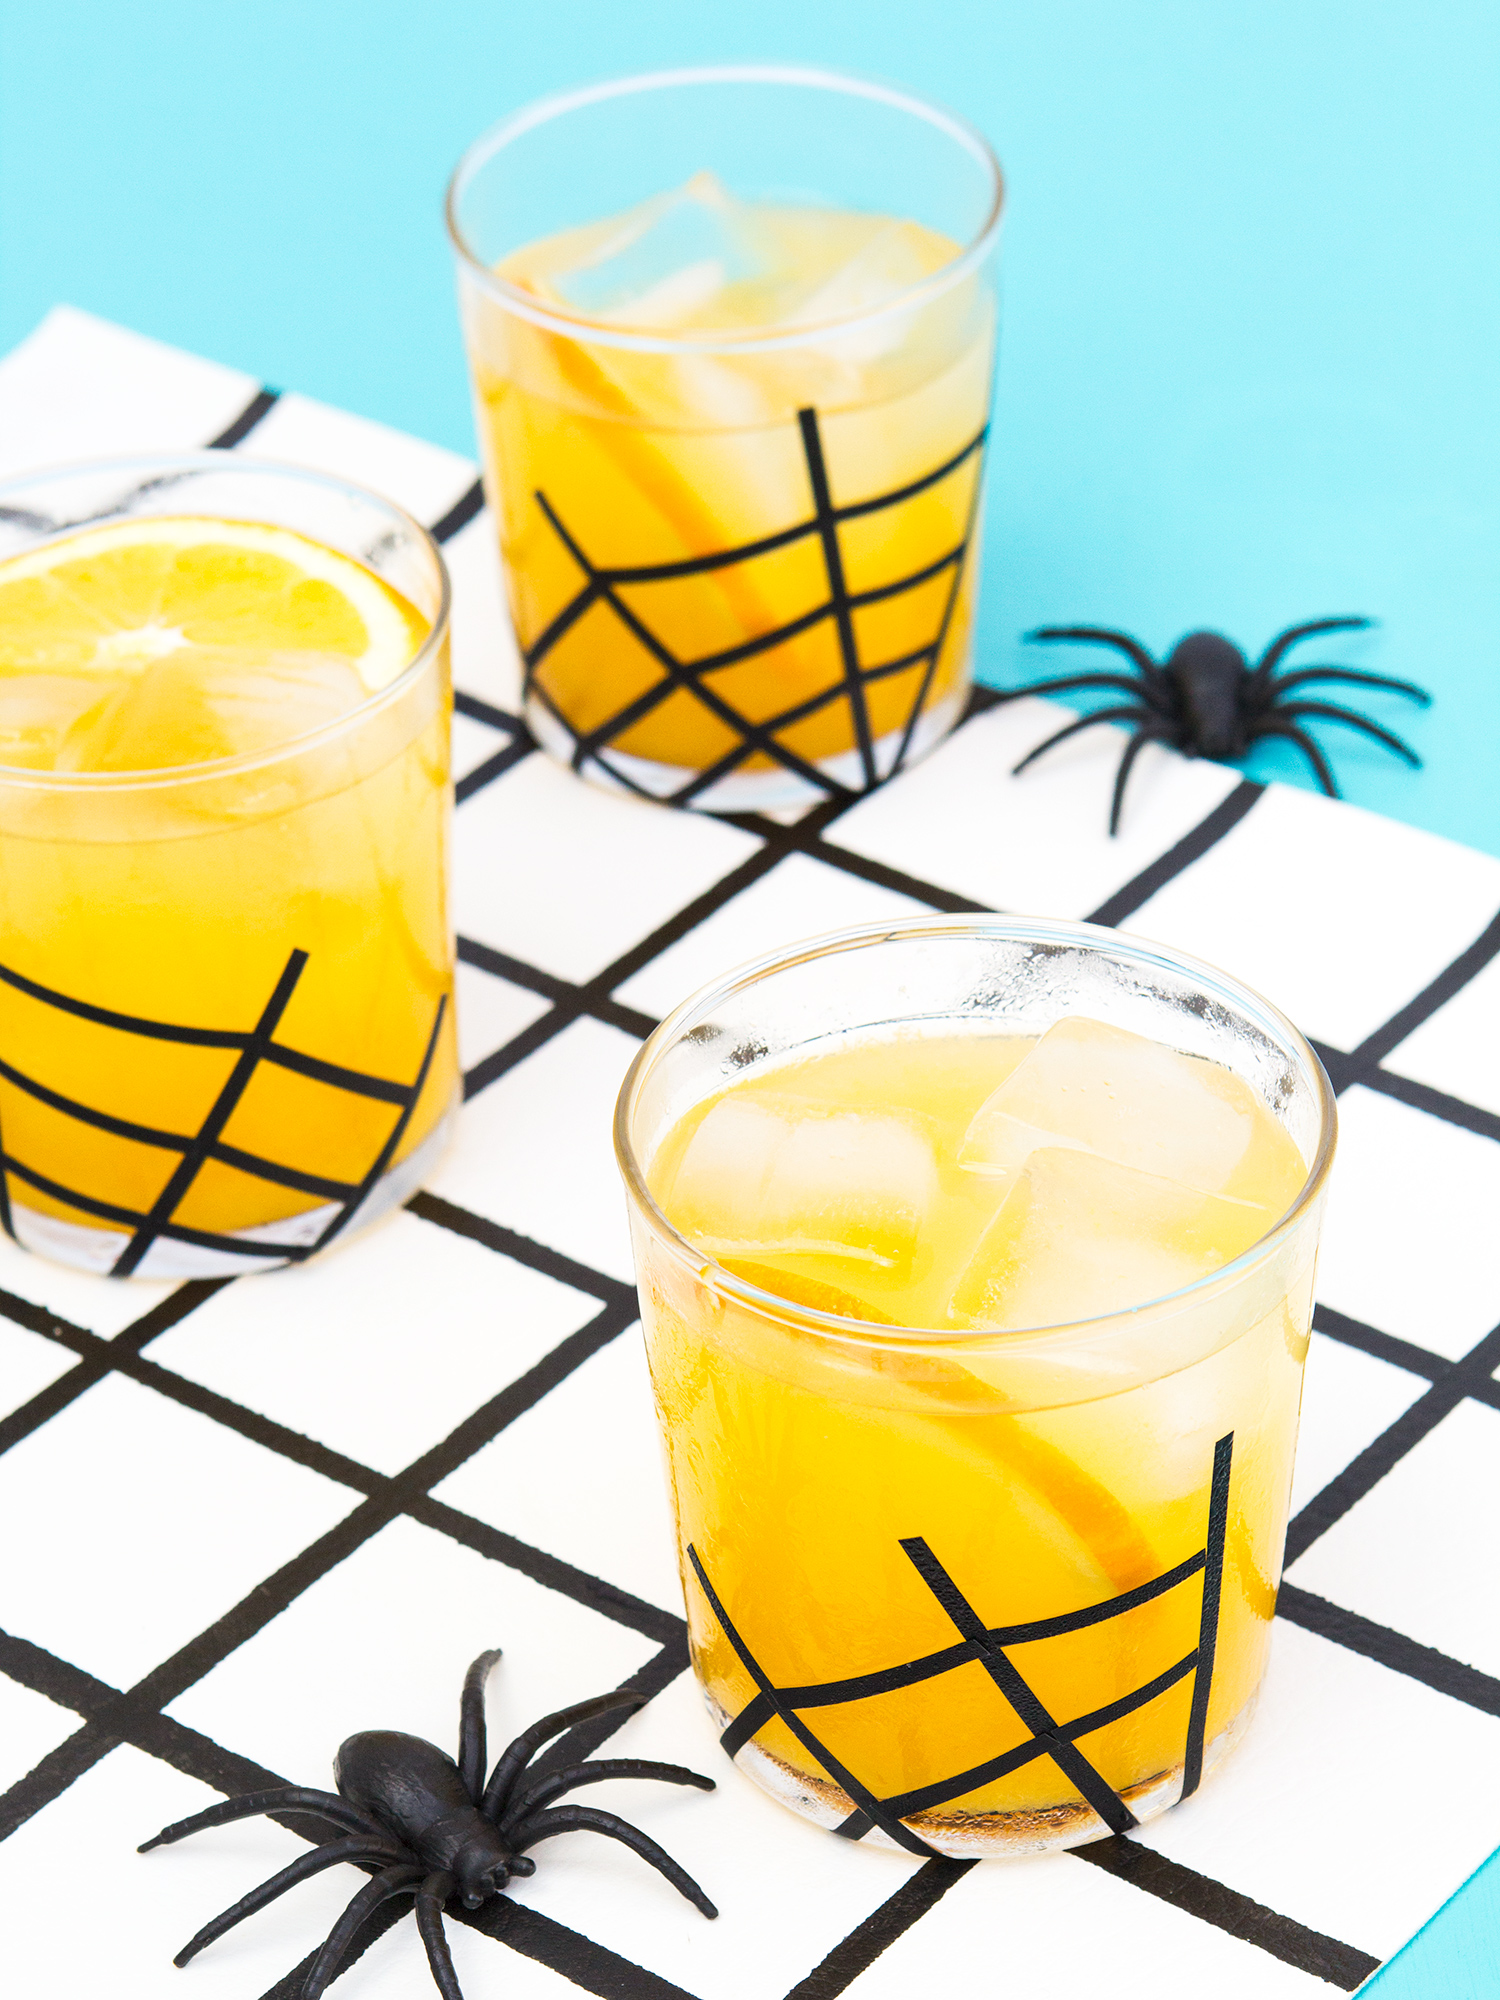 Spider web glassware halloween decor